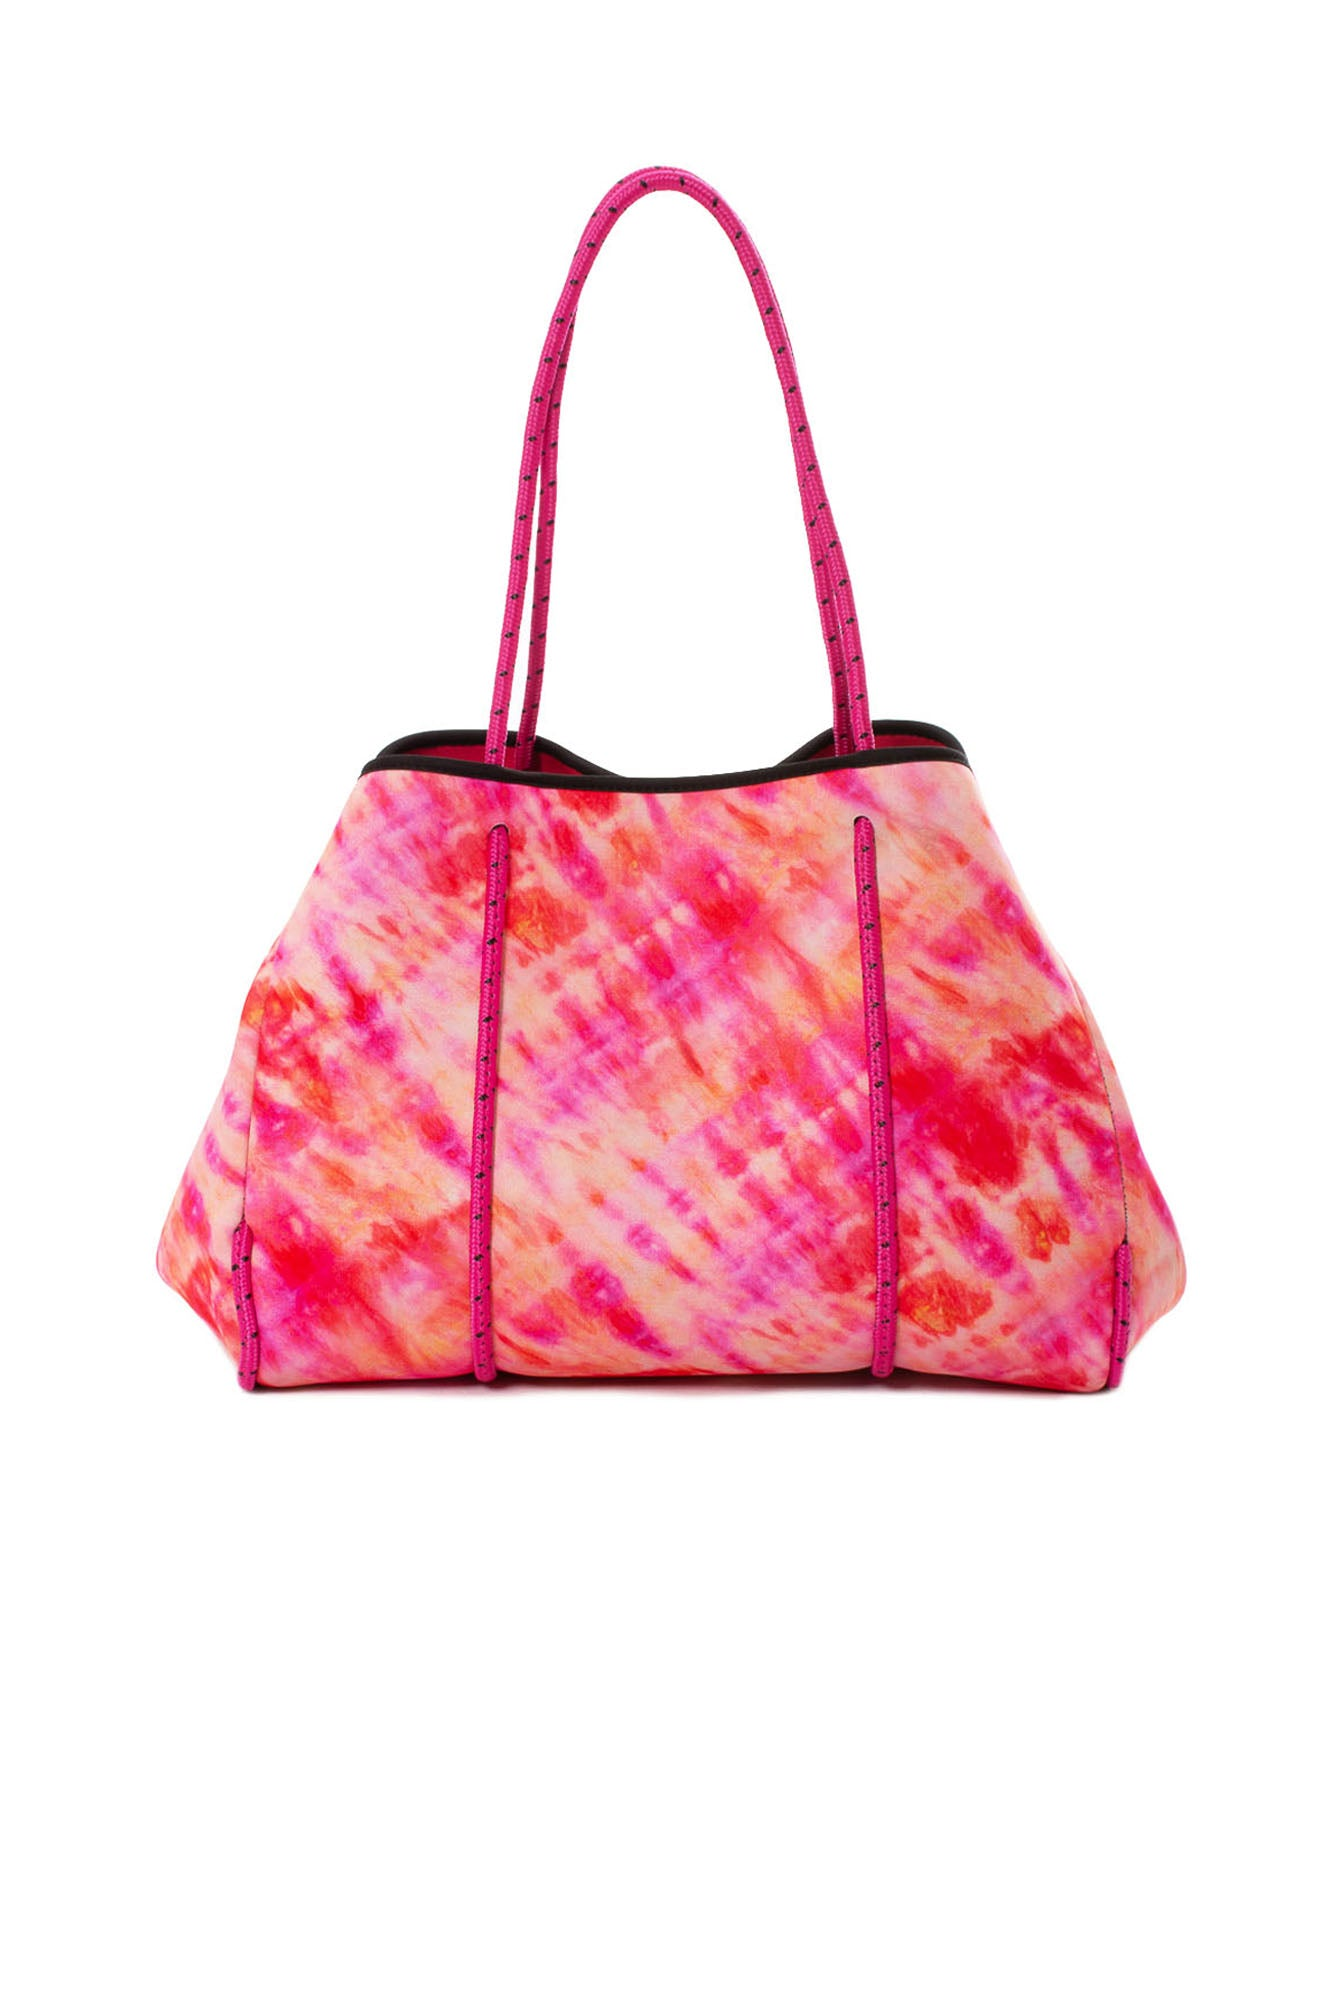 Greyson Sunset Tote Bag with/Tethered Removable Wristlet (Style Greyson, Tie-Dye Red & Pink) by Haute Shore